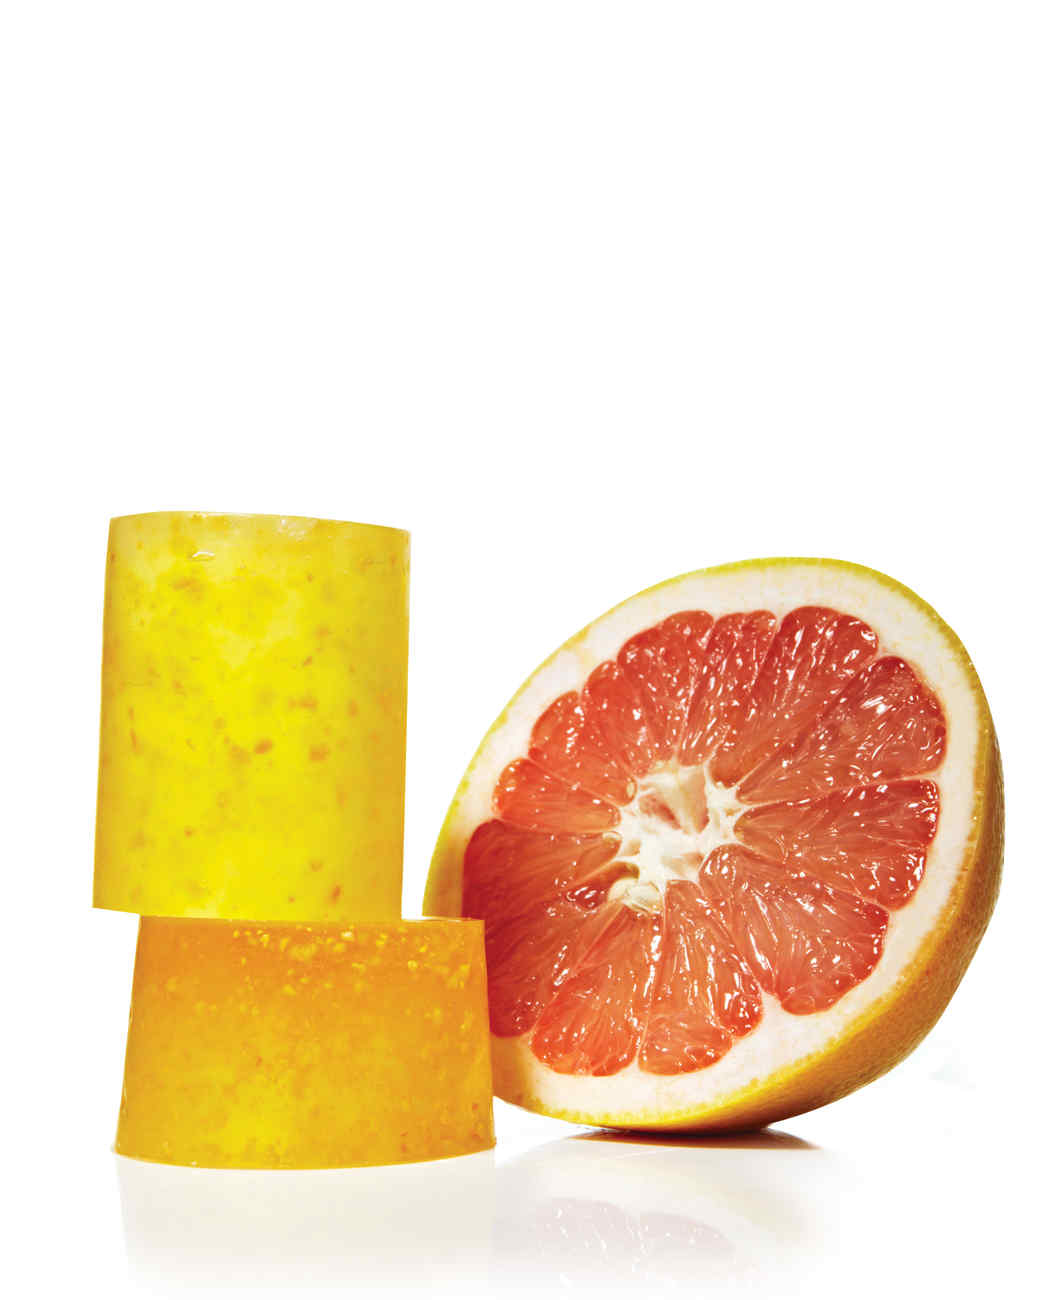 mld107006_0411_forgrapefruit_soap.jpg